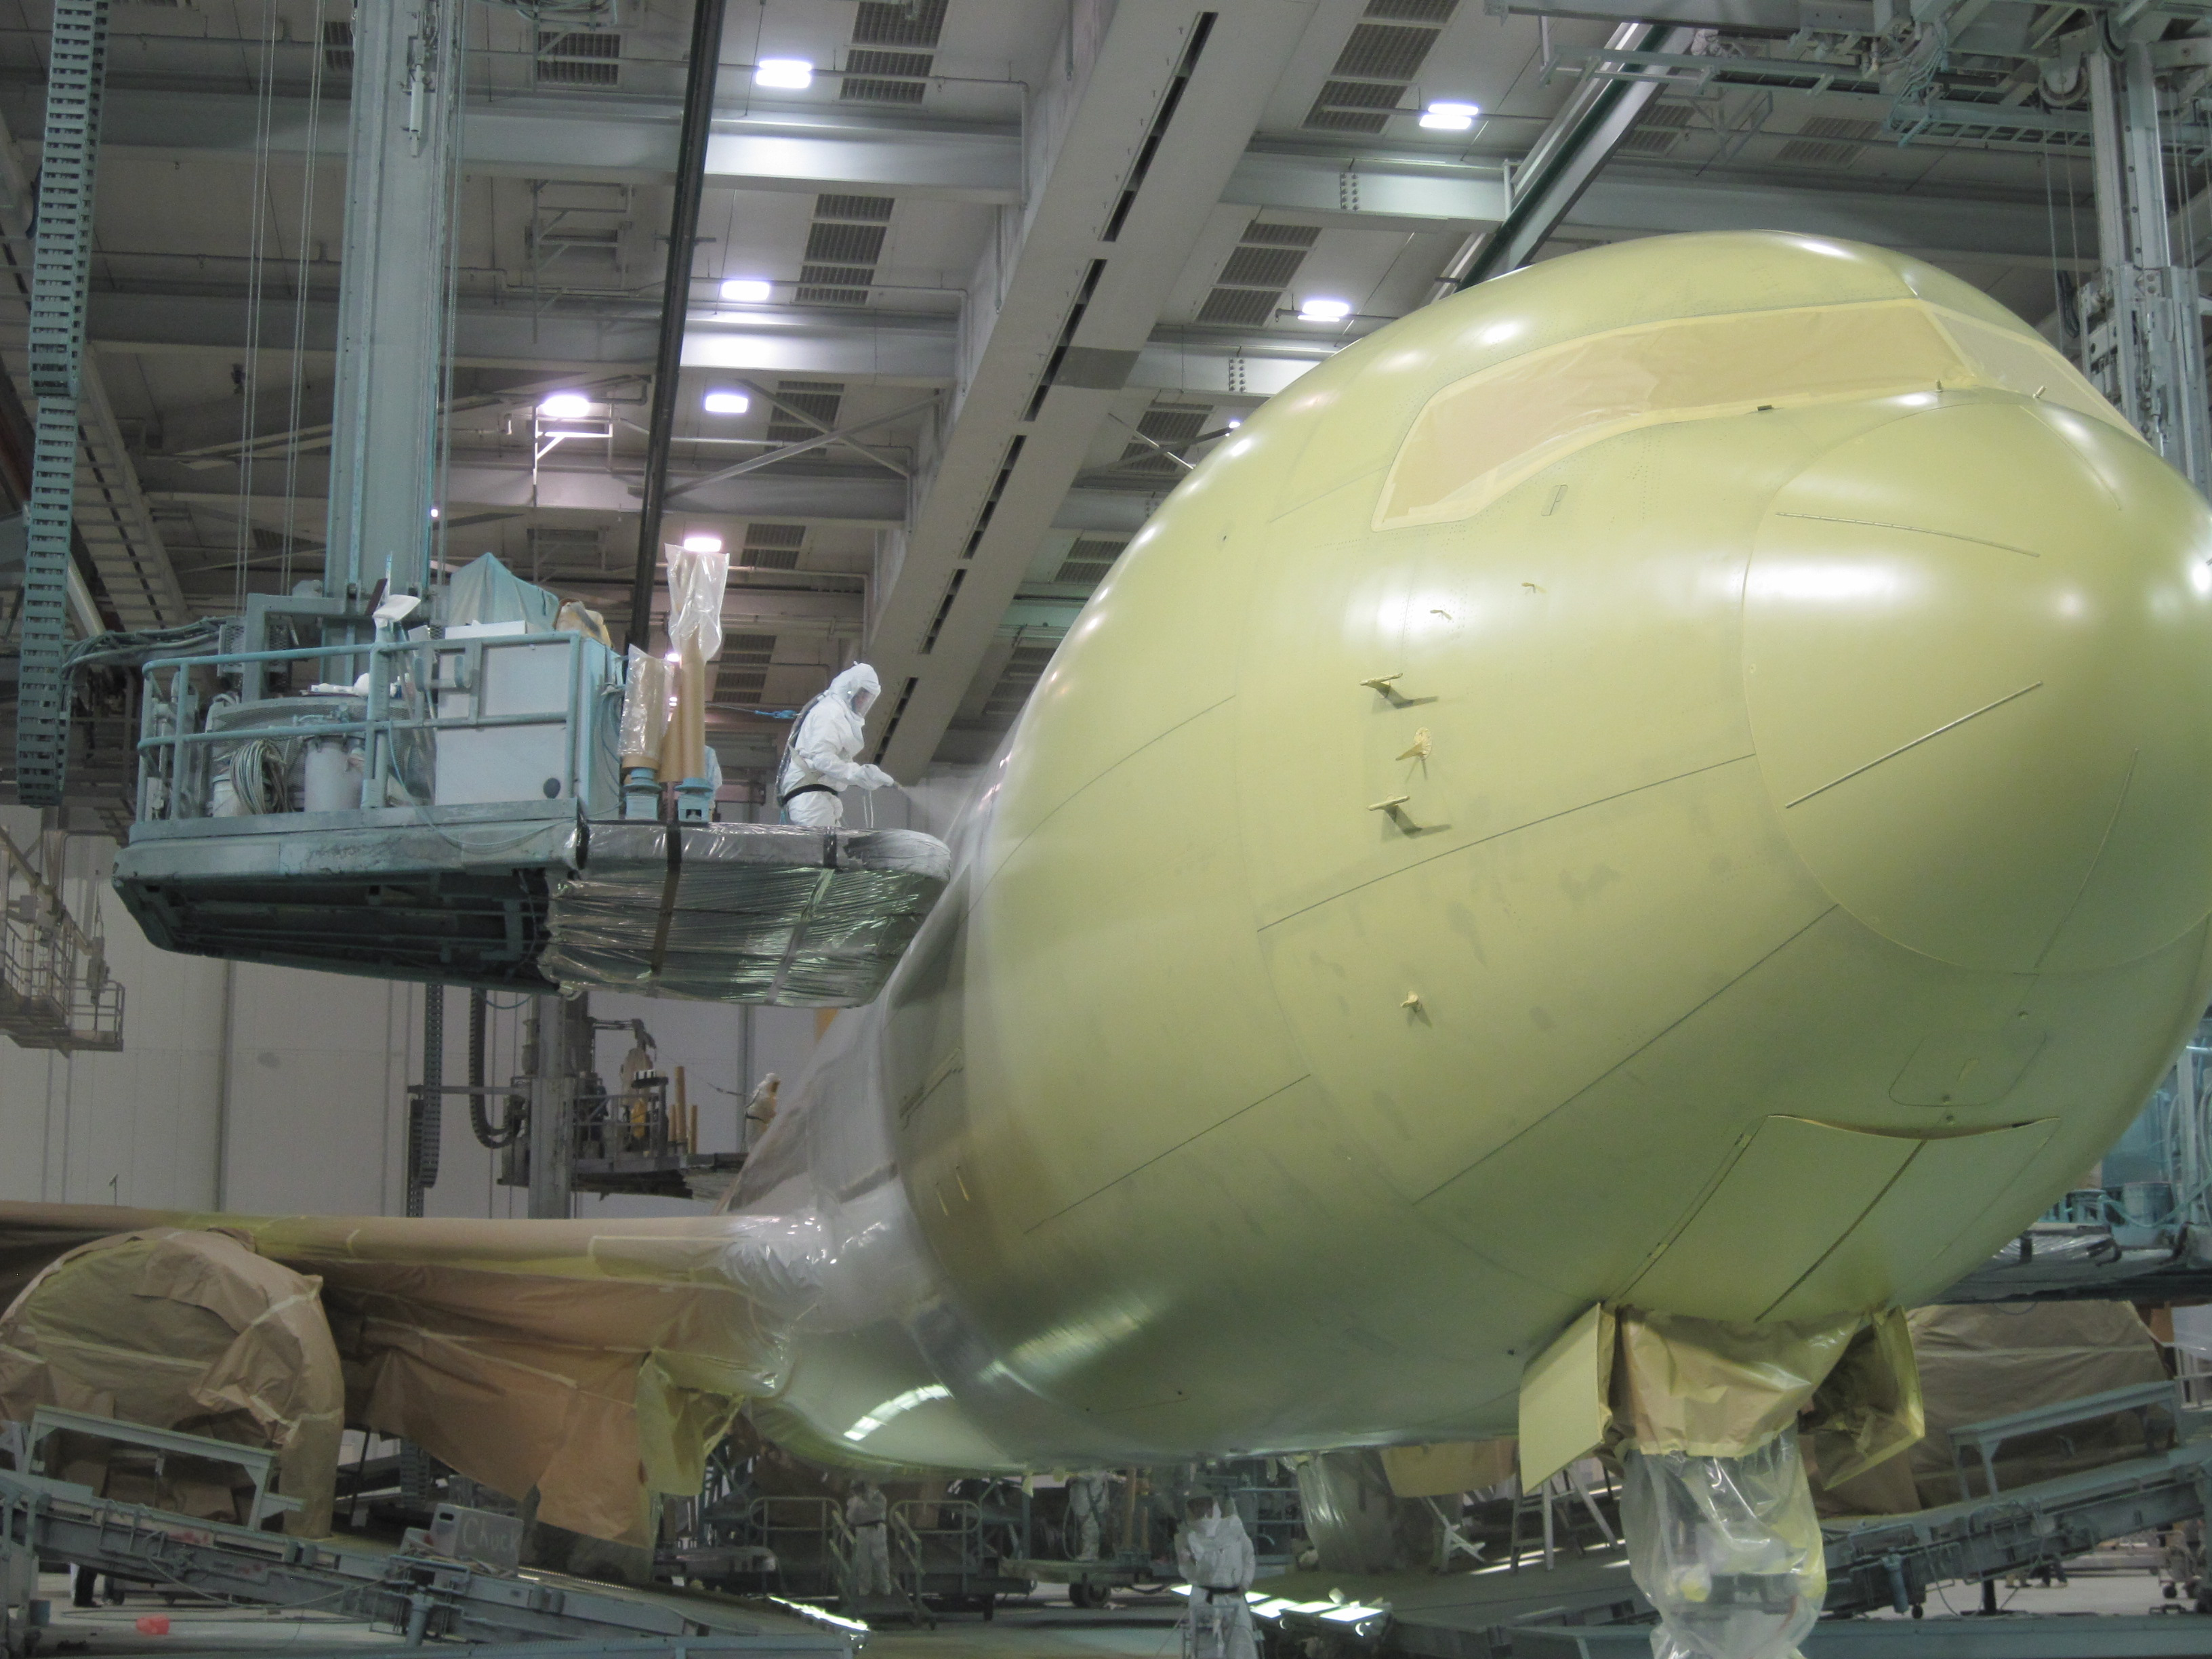 A large commercial aircraft is painted in a hanger.